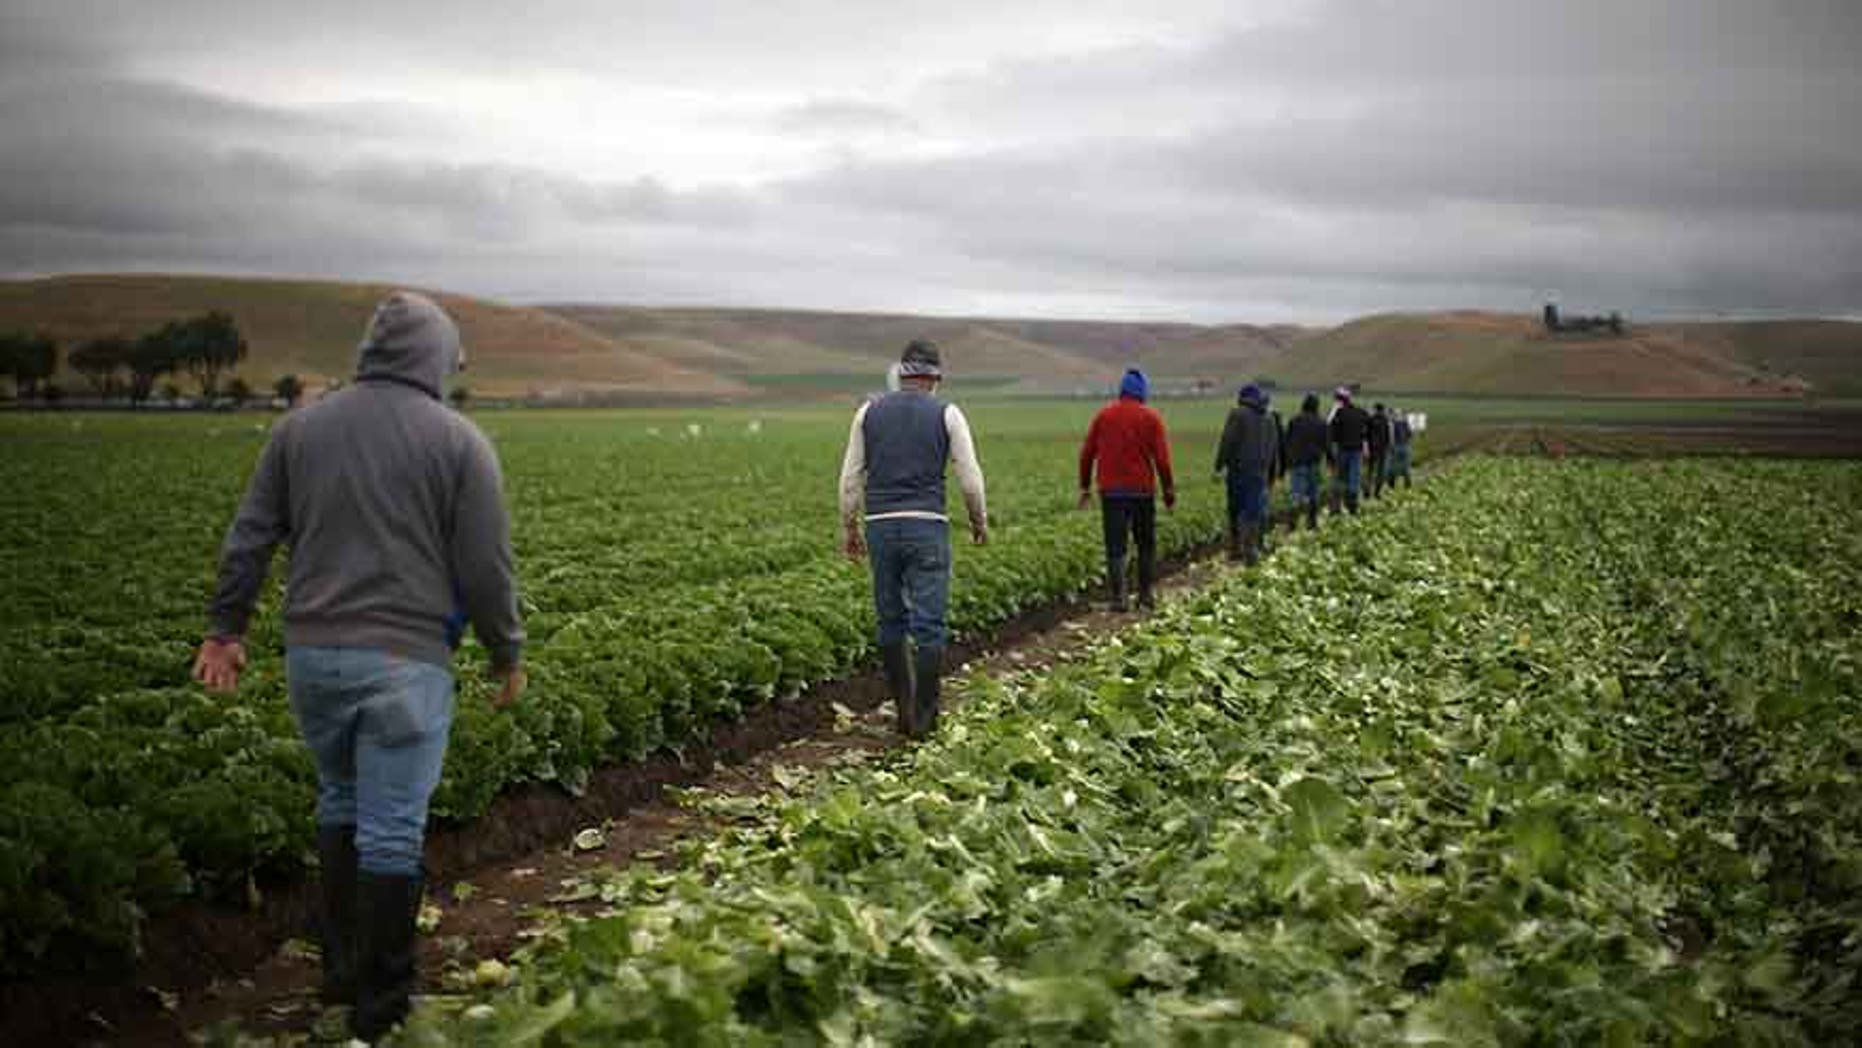 """The prospects of a looming trade war between the U.S. and China has already hurt many farmers.  The Washington Post reported that earlier this month, """"in the hours after China floated a levy on soybeans, futures prices dropped 4 percent, or 40 cents, to $9.97 a bushel, approaching the break-even point on many farms."""""""